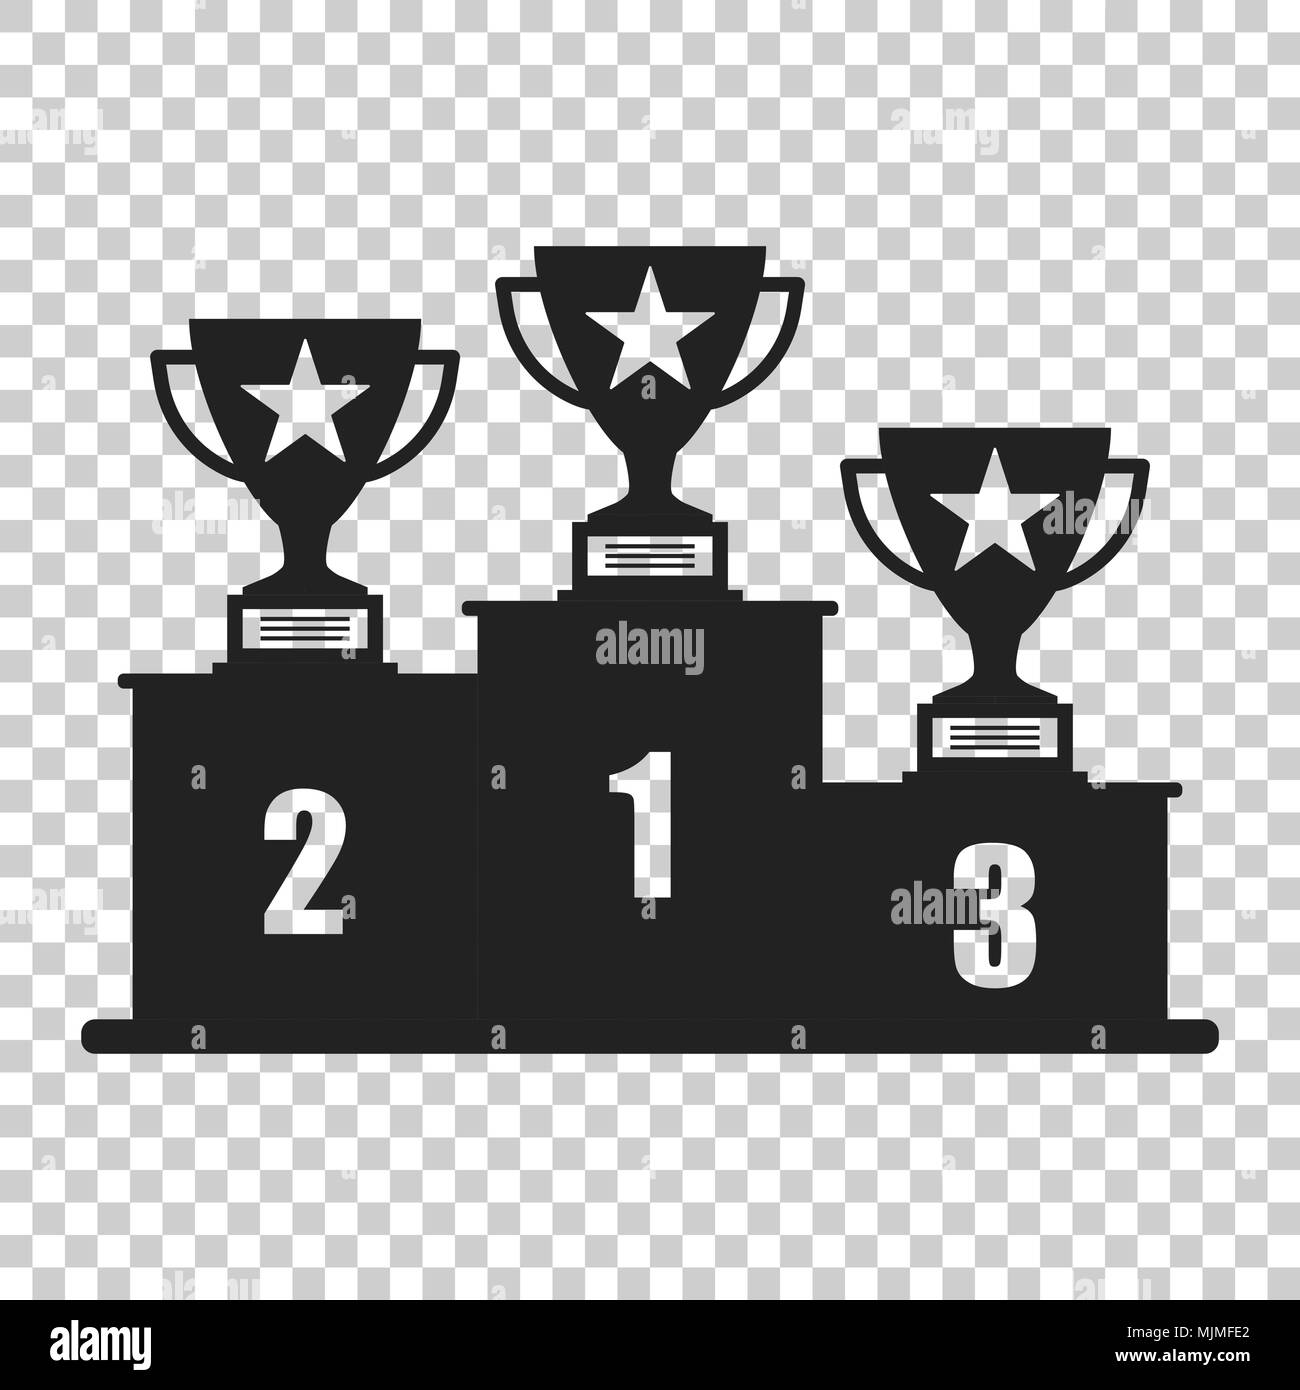 Winners Podium With Trophy Icon In Flat Style Pedestal Illustration On Isolated Transparent Background Gold Silver And Bronze Award Sign Concept